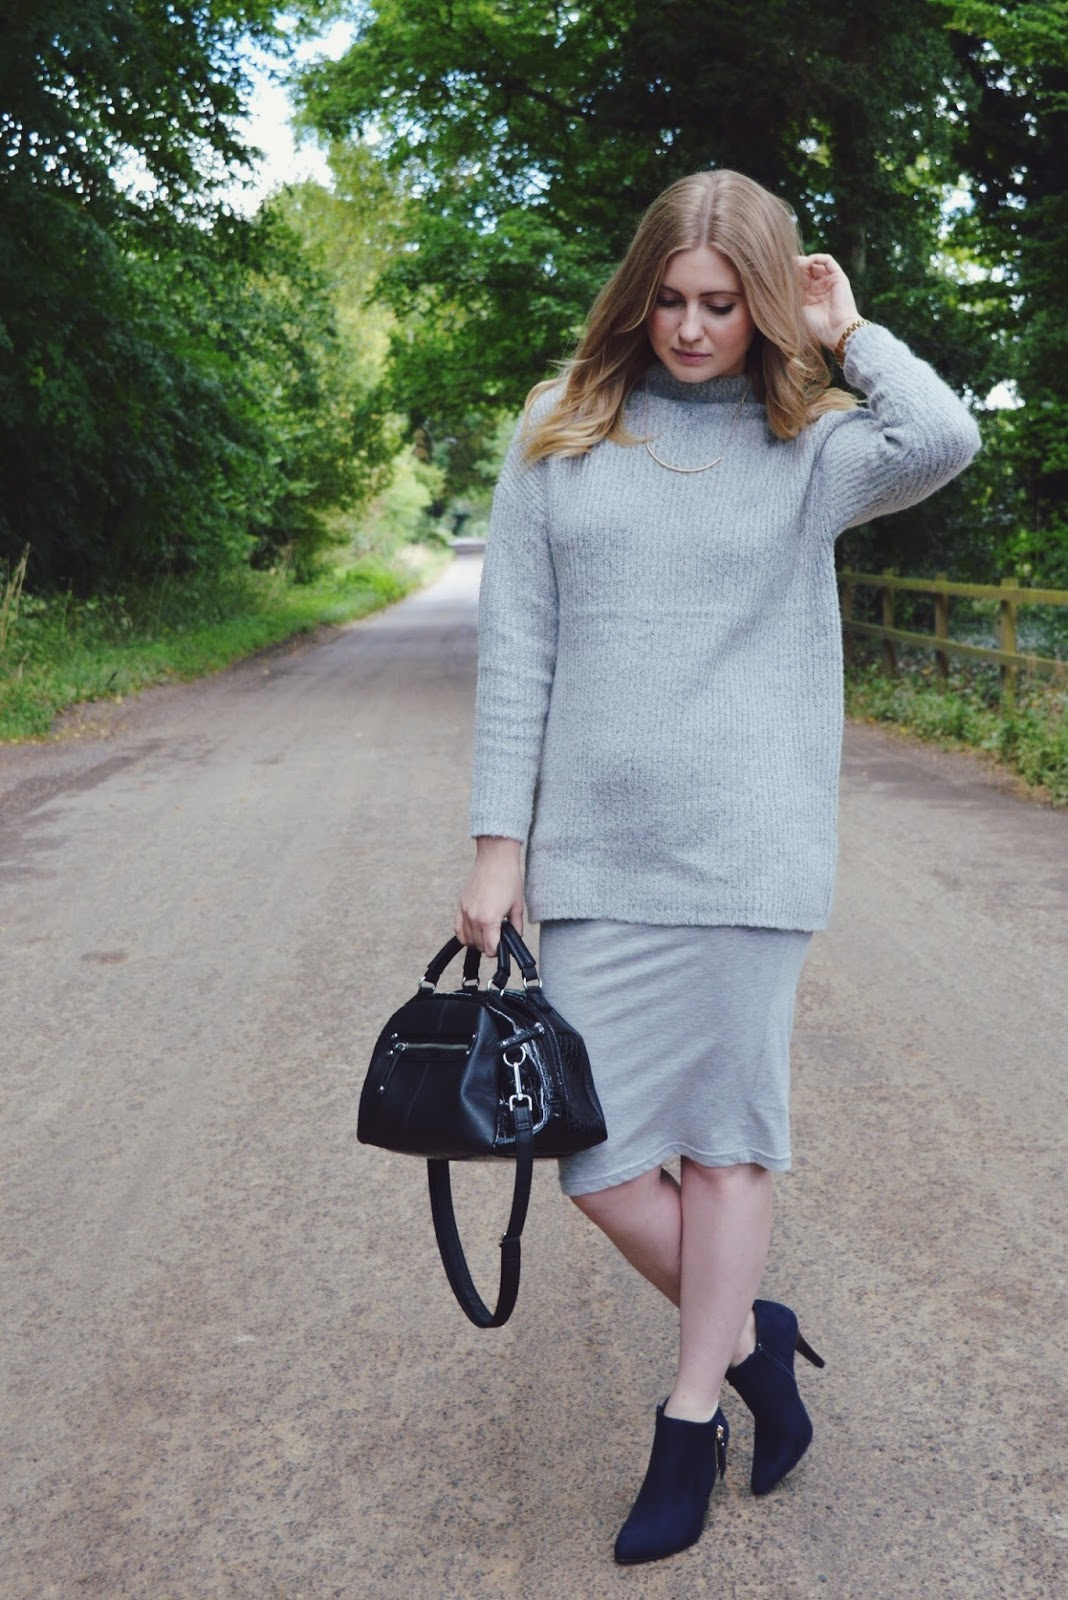 Deichmann x Hanneli Mustaparta collection, FashionFake, fashion bloggers